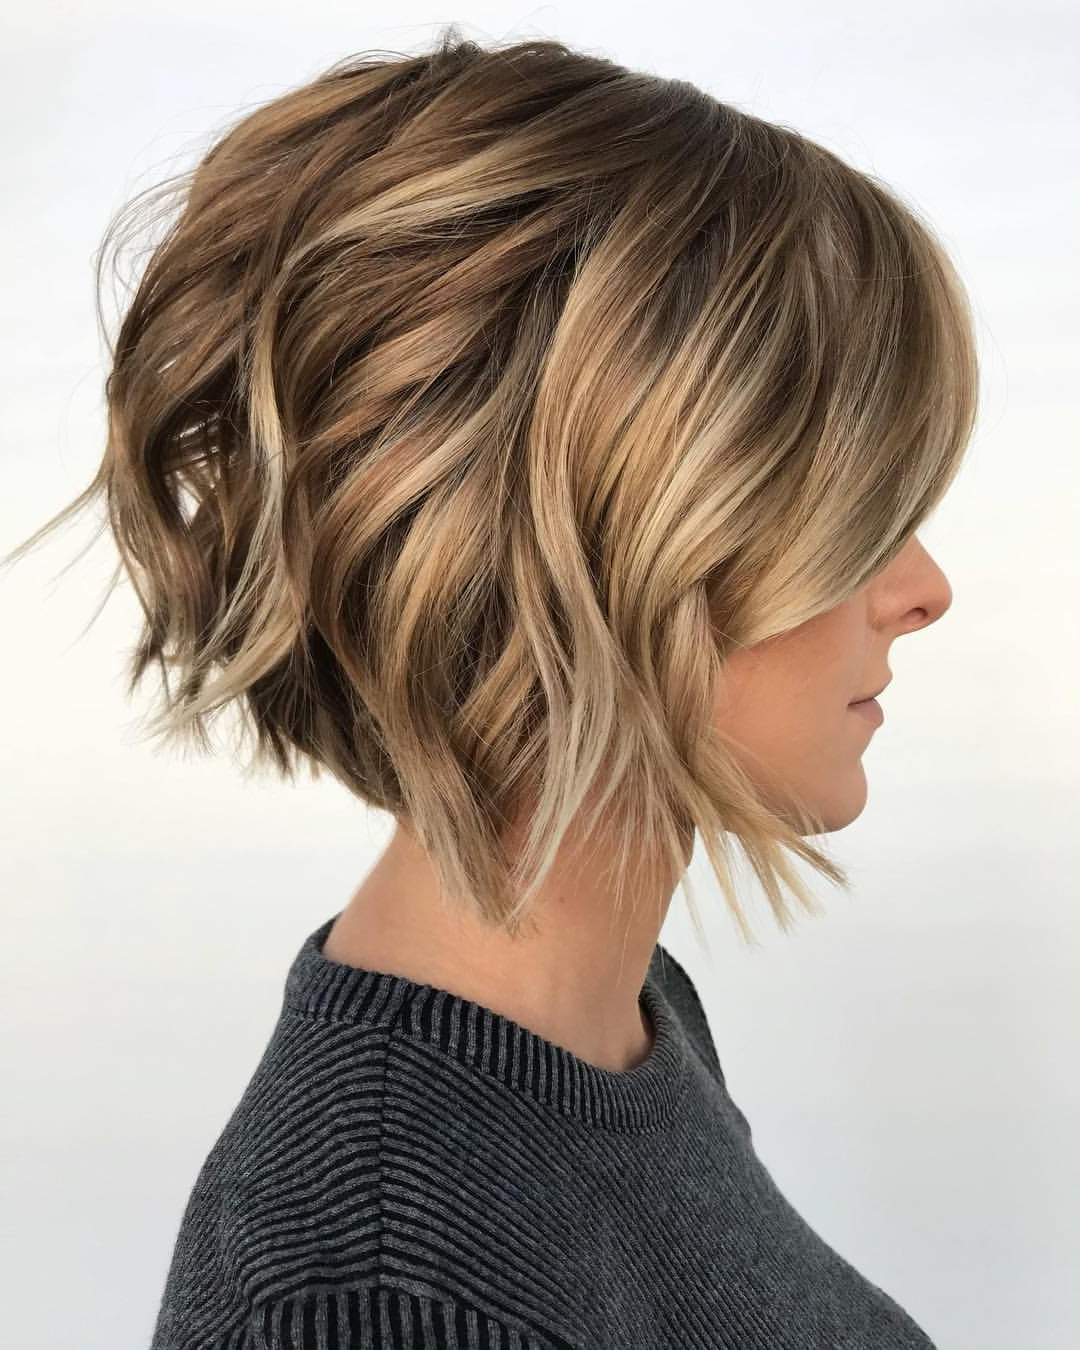 Pindesiree Barraza On Hair | Pinterest | Cabello, Pelo Ondulado Within Dynamic Tousled Blonde Bob Hairstyles With Dark Underlayer (View 18 of 20)